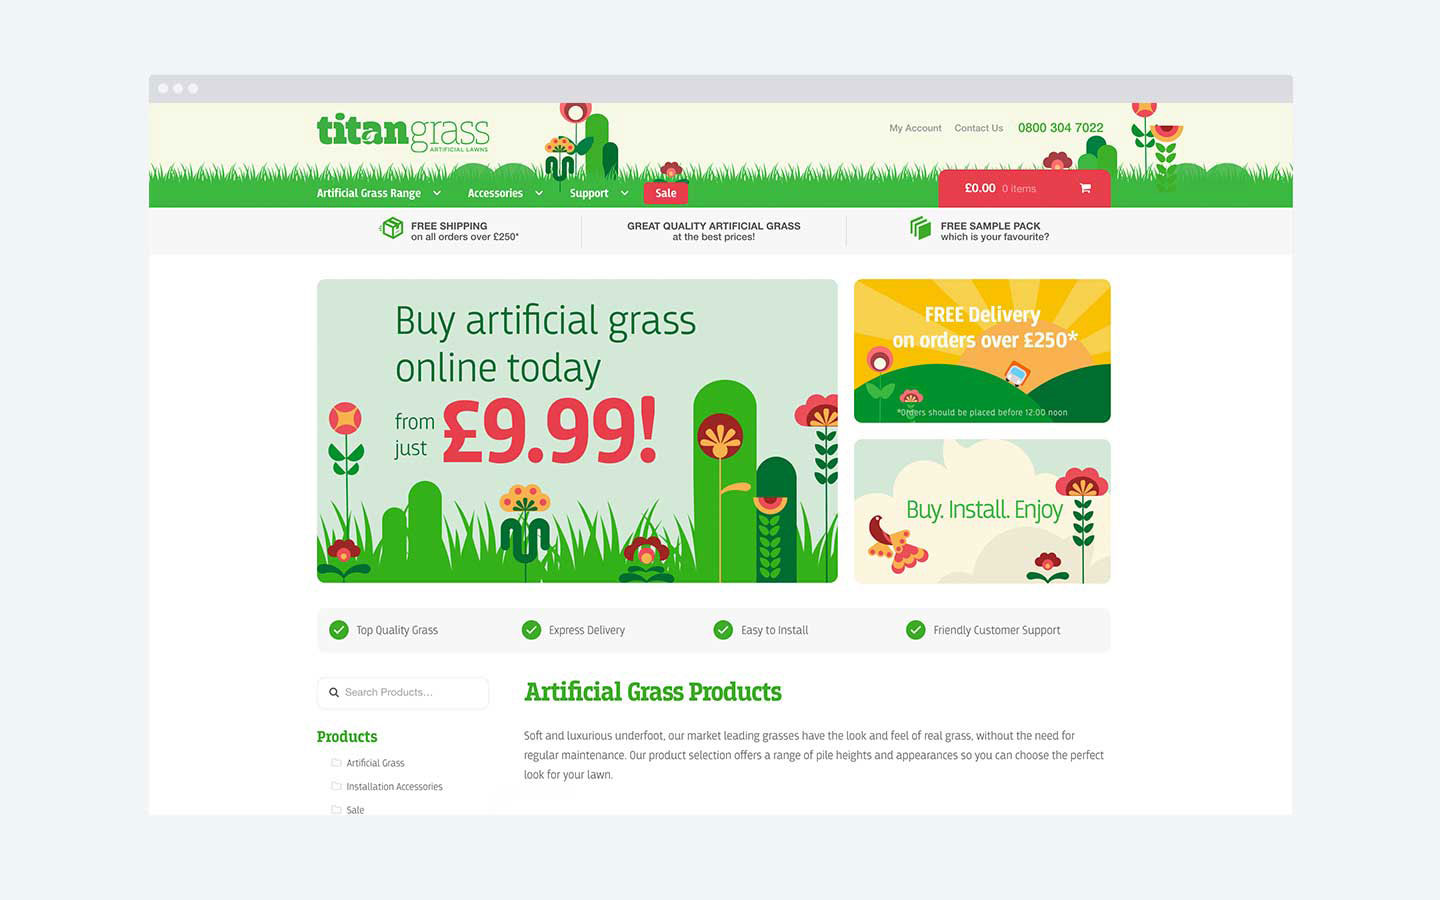 Titan Grass - Homepage Design